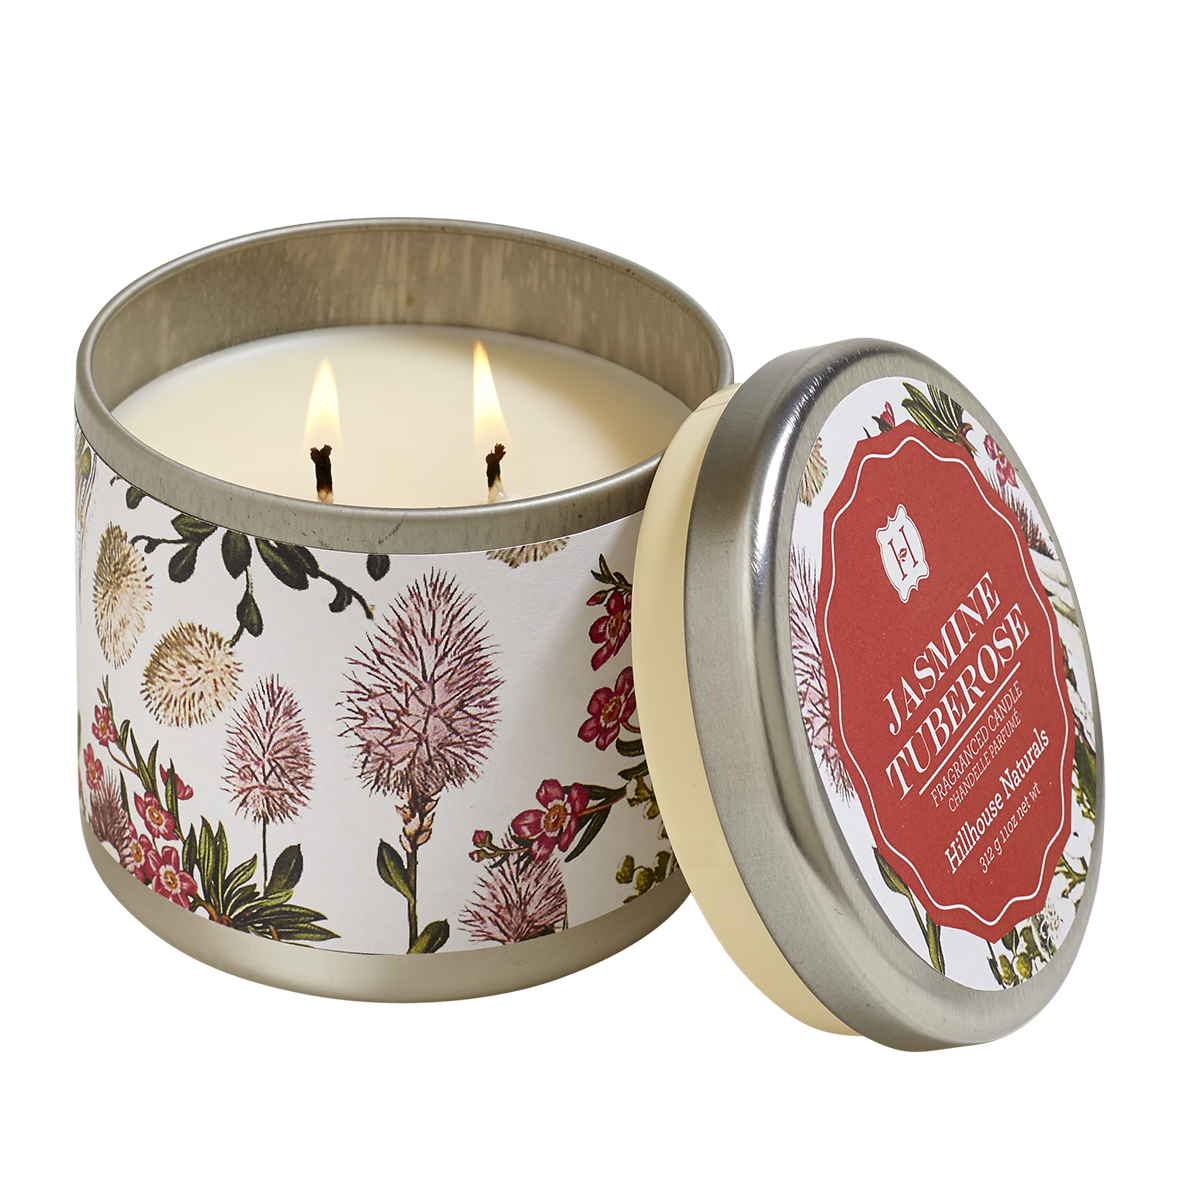 A Jane Austen Candle That Ll Smell Like Gardenia Tuberose And